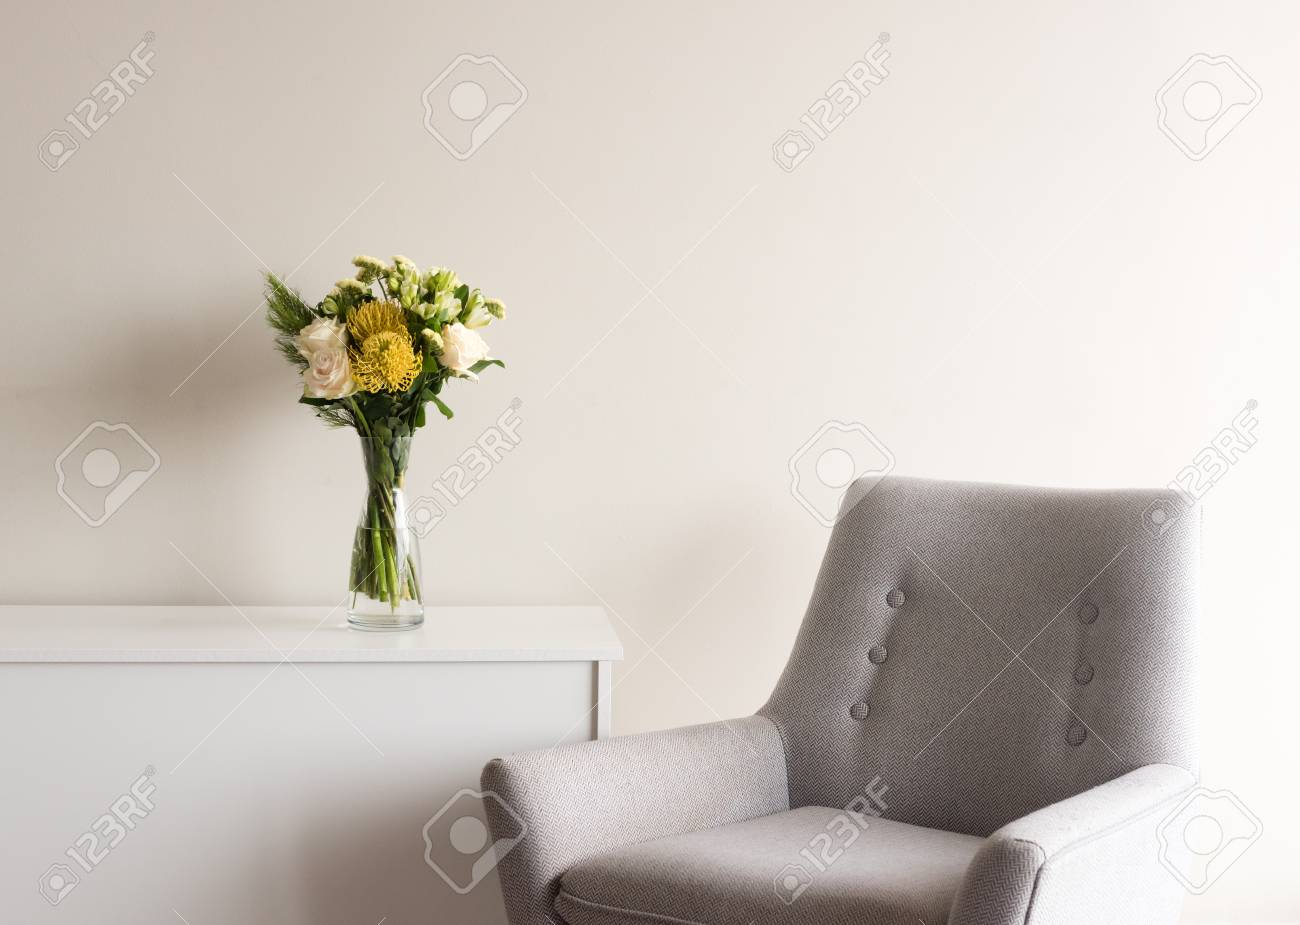 Close Up Of Grey Retro Armchair Next To White Cabinet With Cream